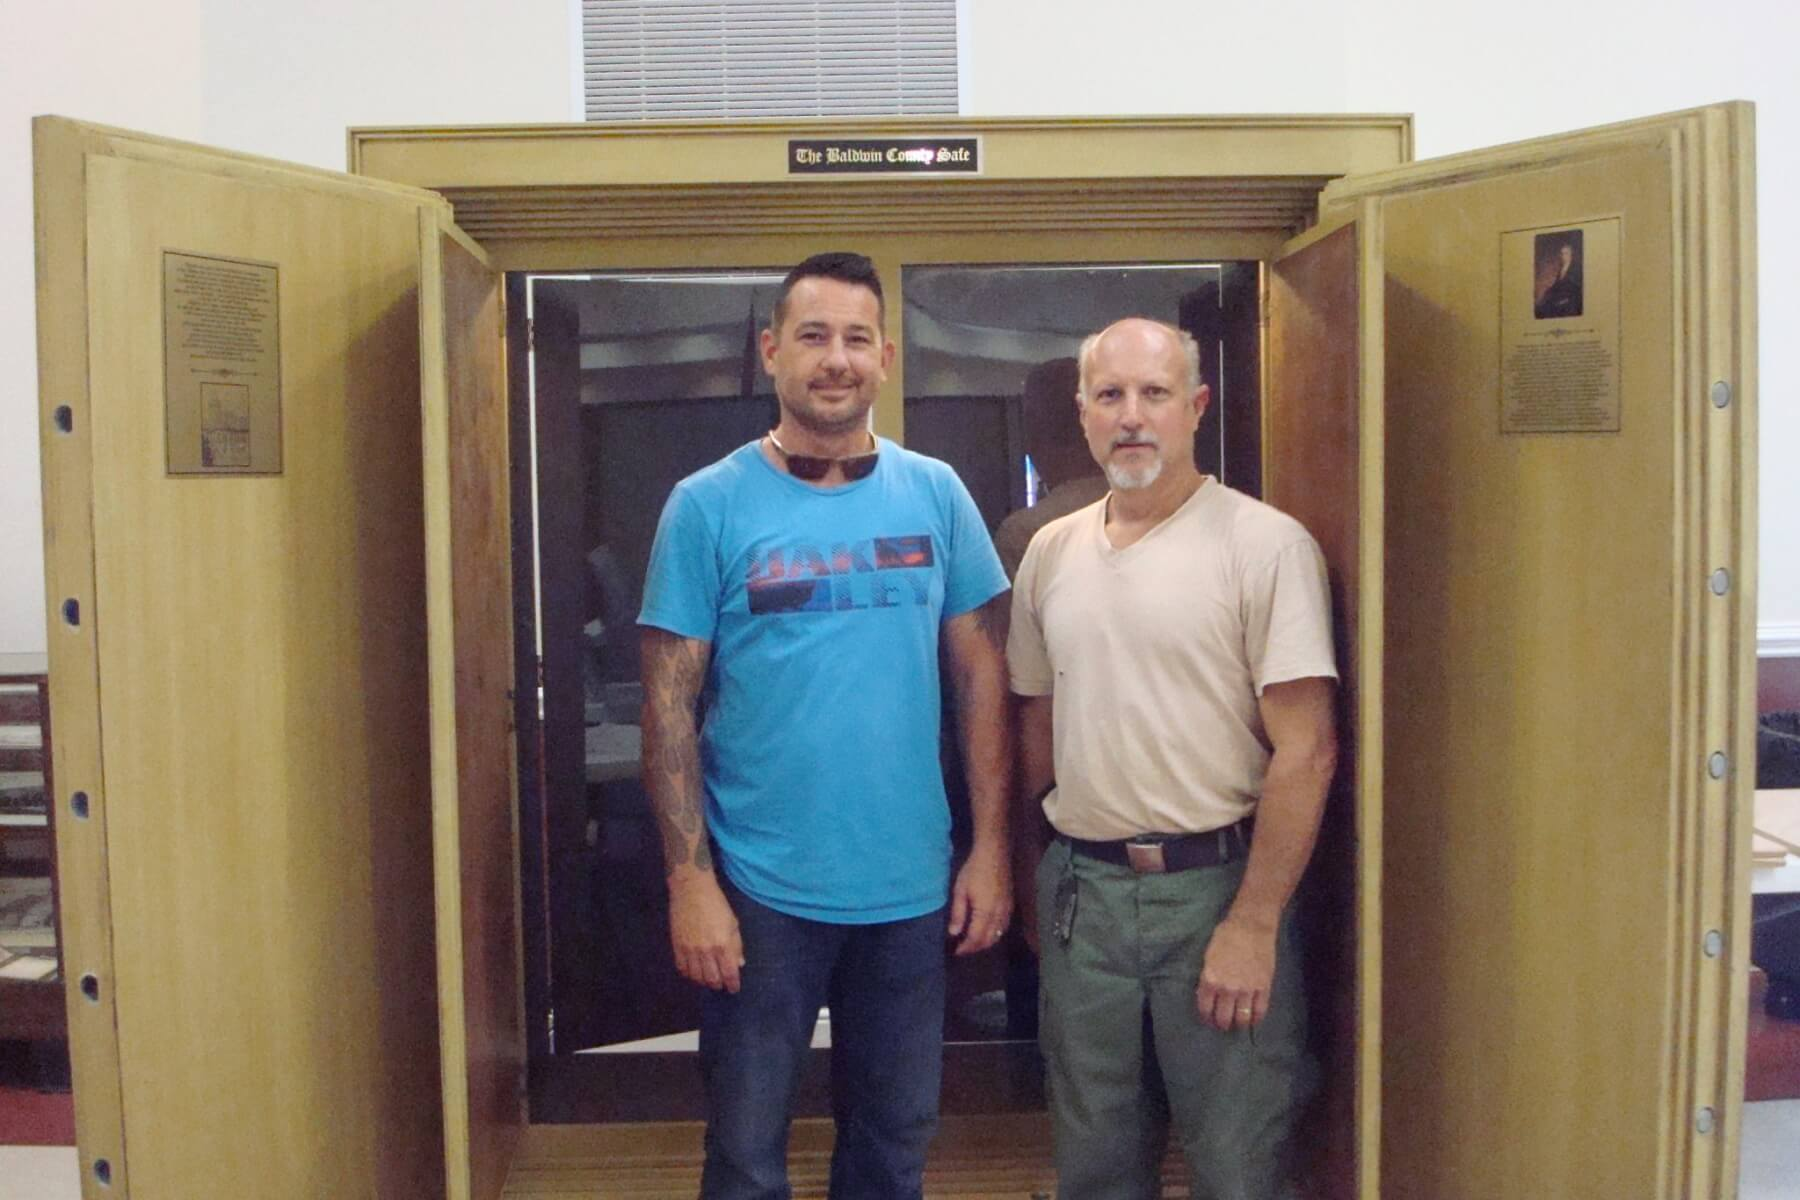 Baldwin County historic safe exhibit on display in Fairhope